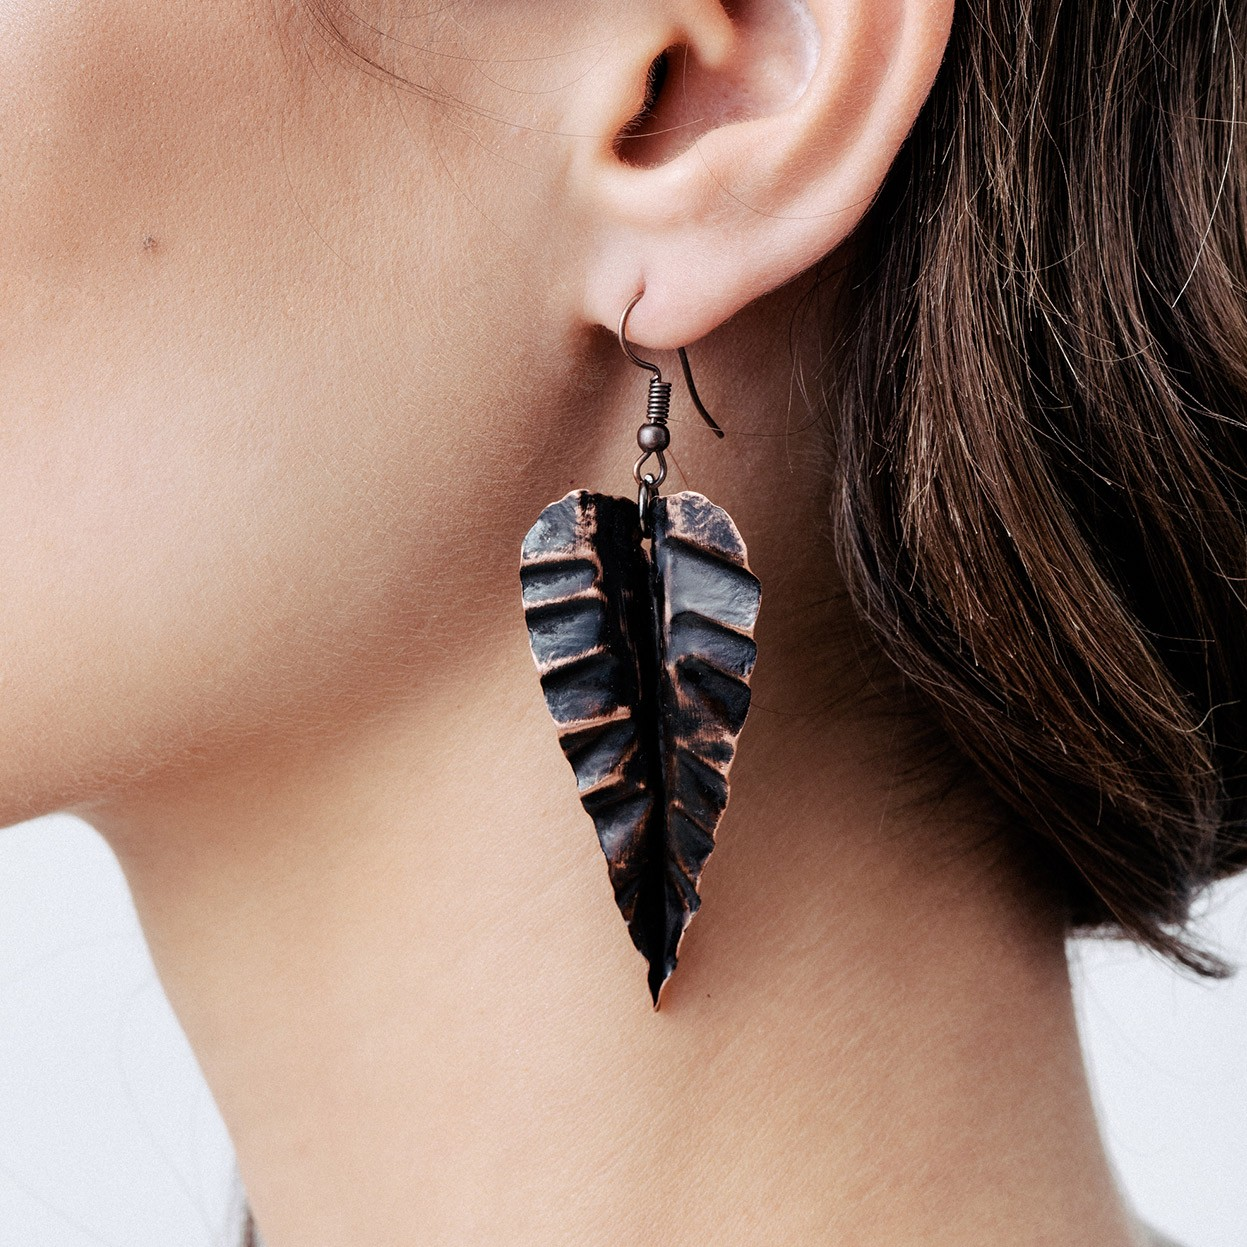 Round copper earrings with black shape